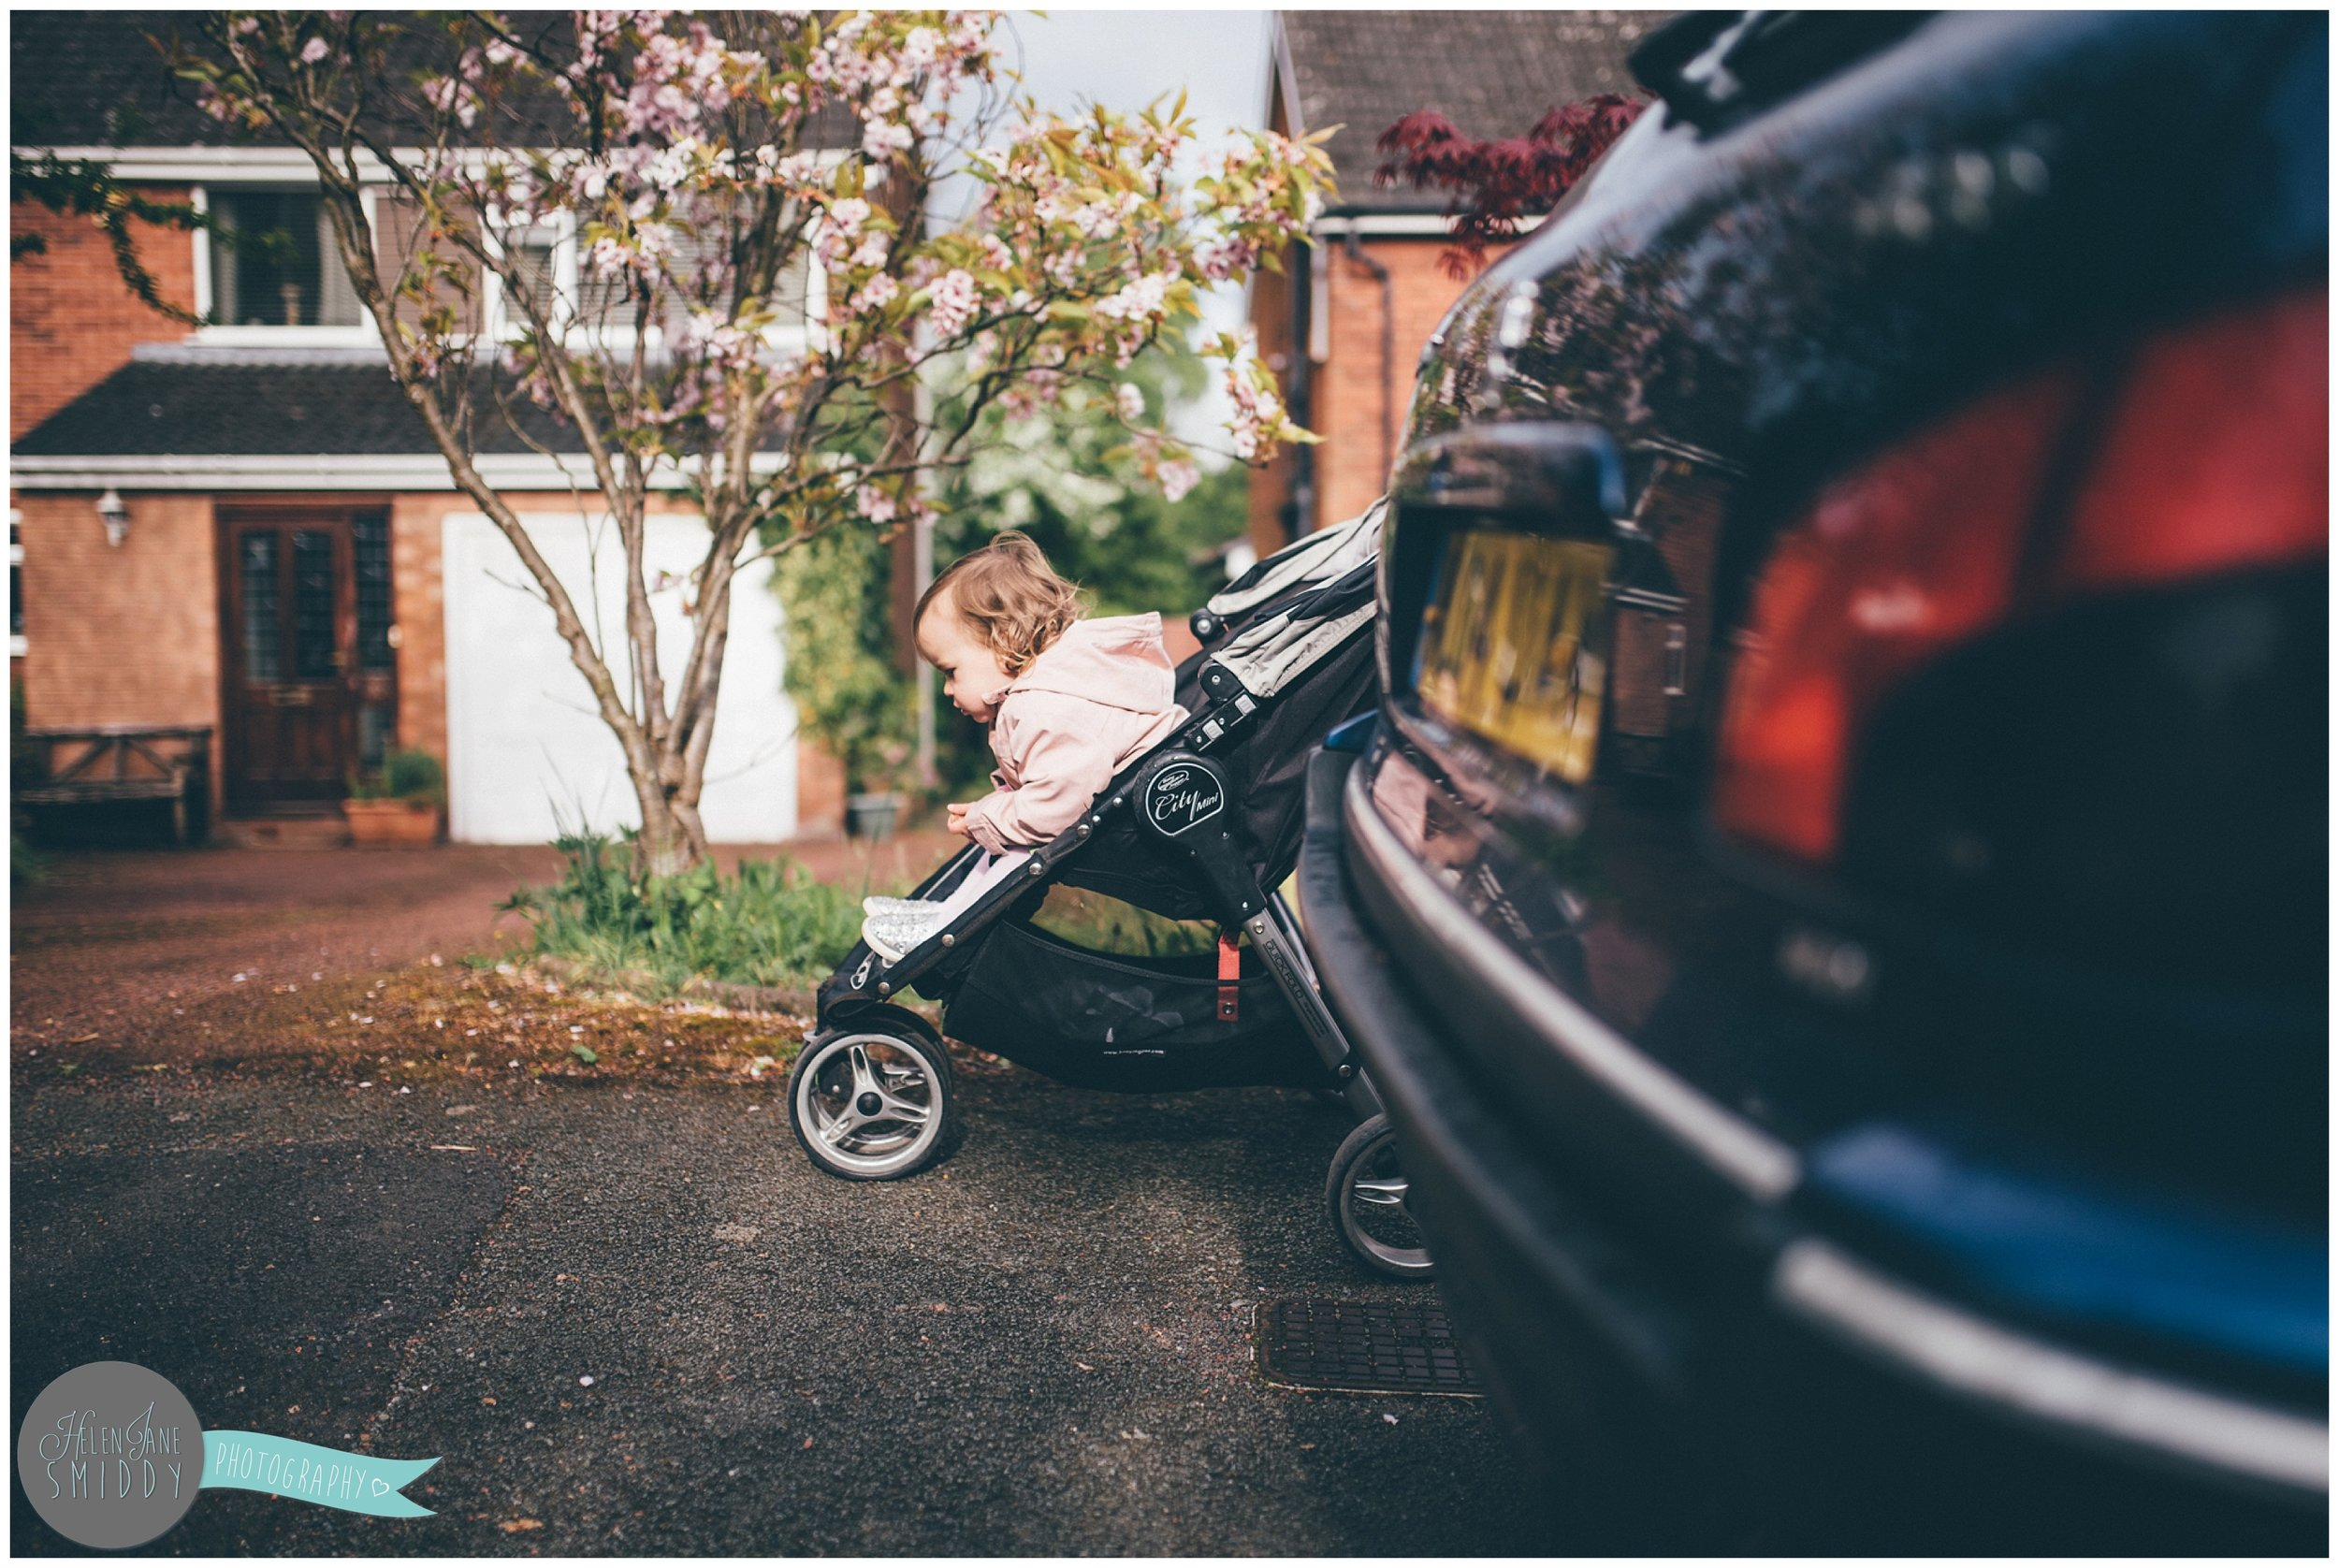 Little Zoe in her buggy during A Day In The Life photoshoot in Frodsham, Cheshire.